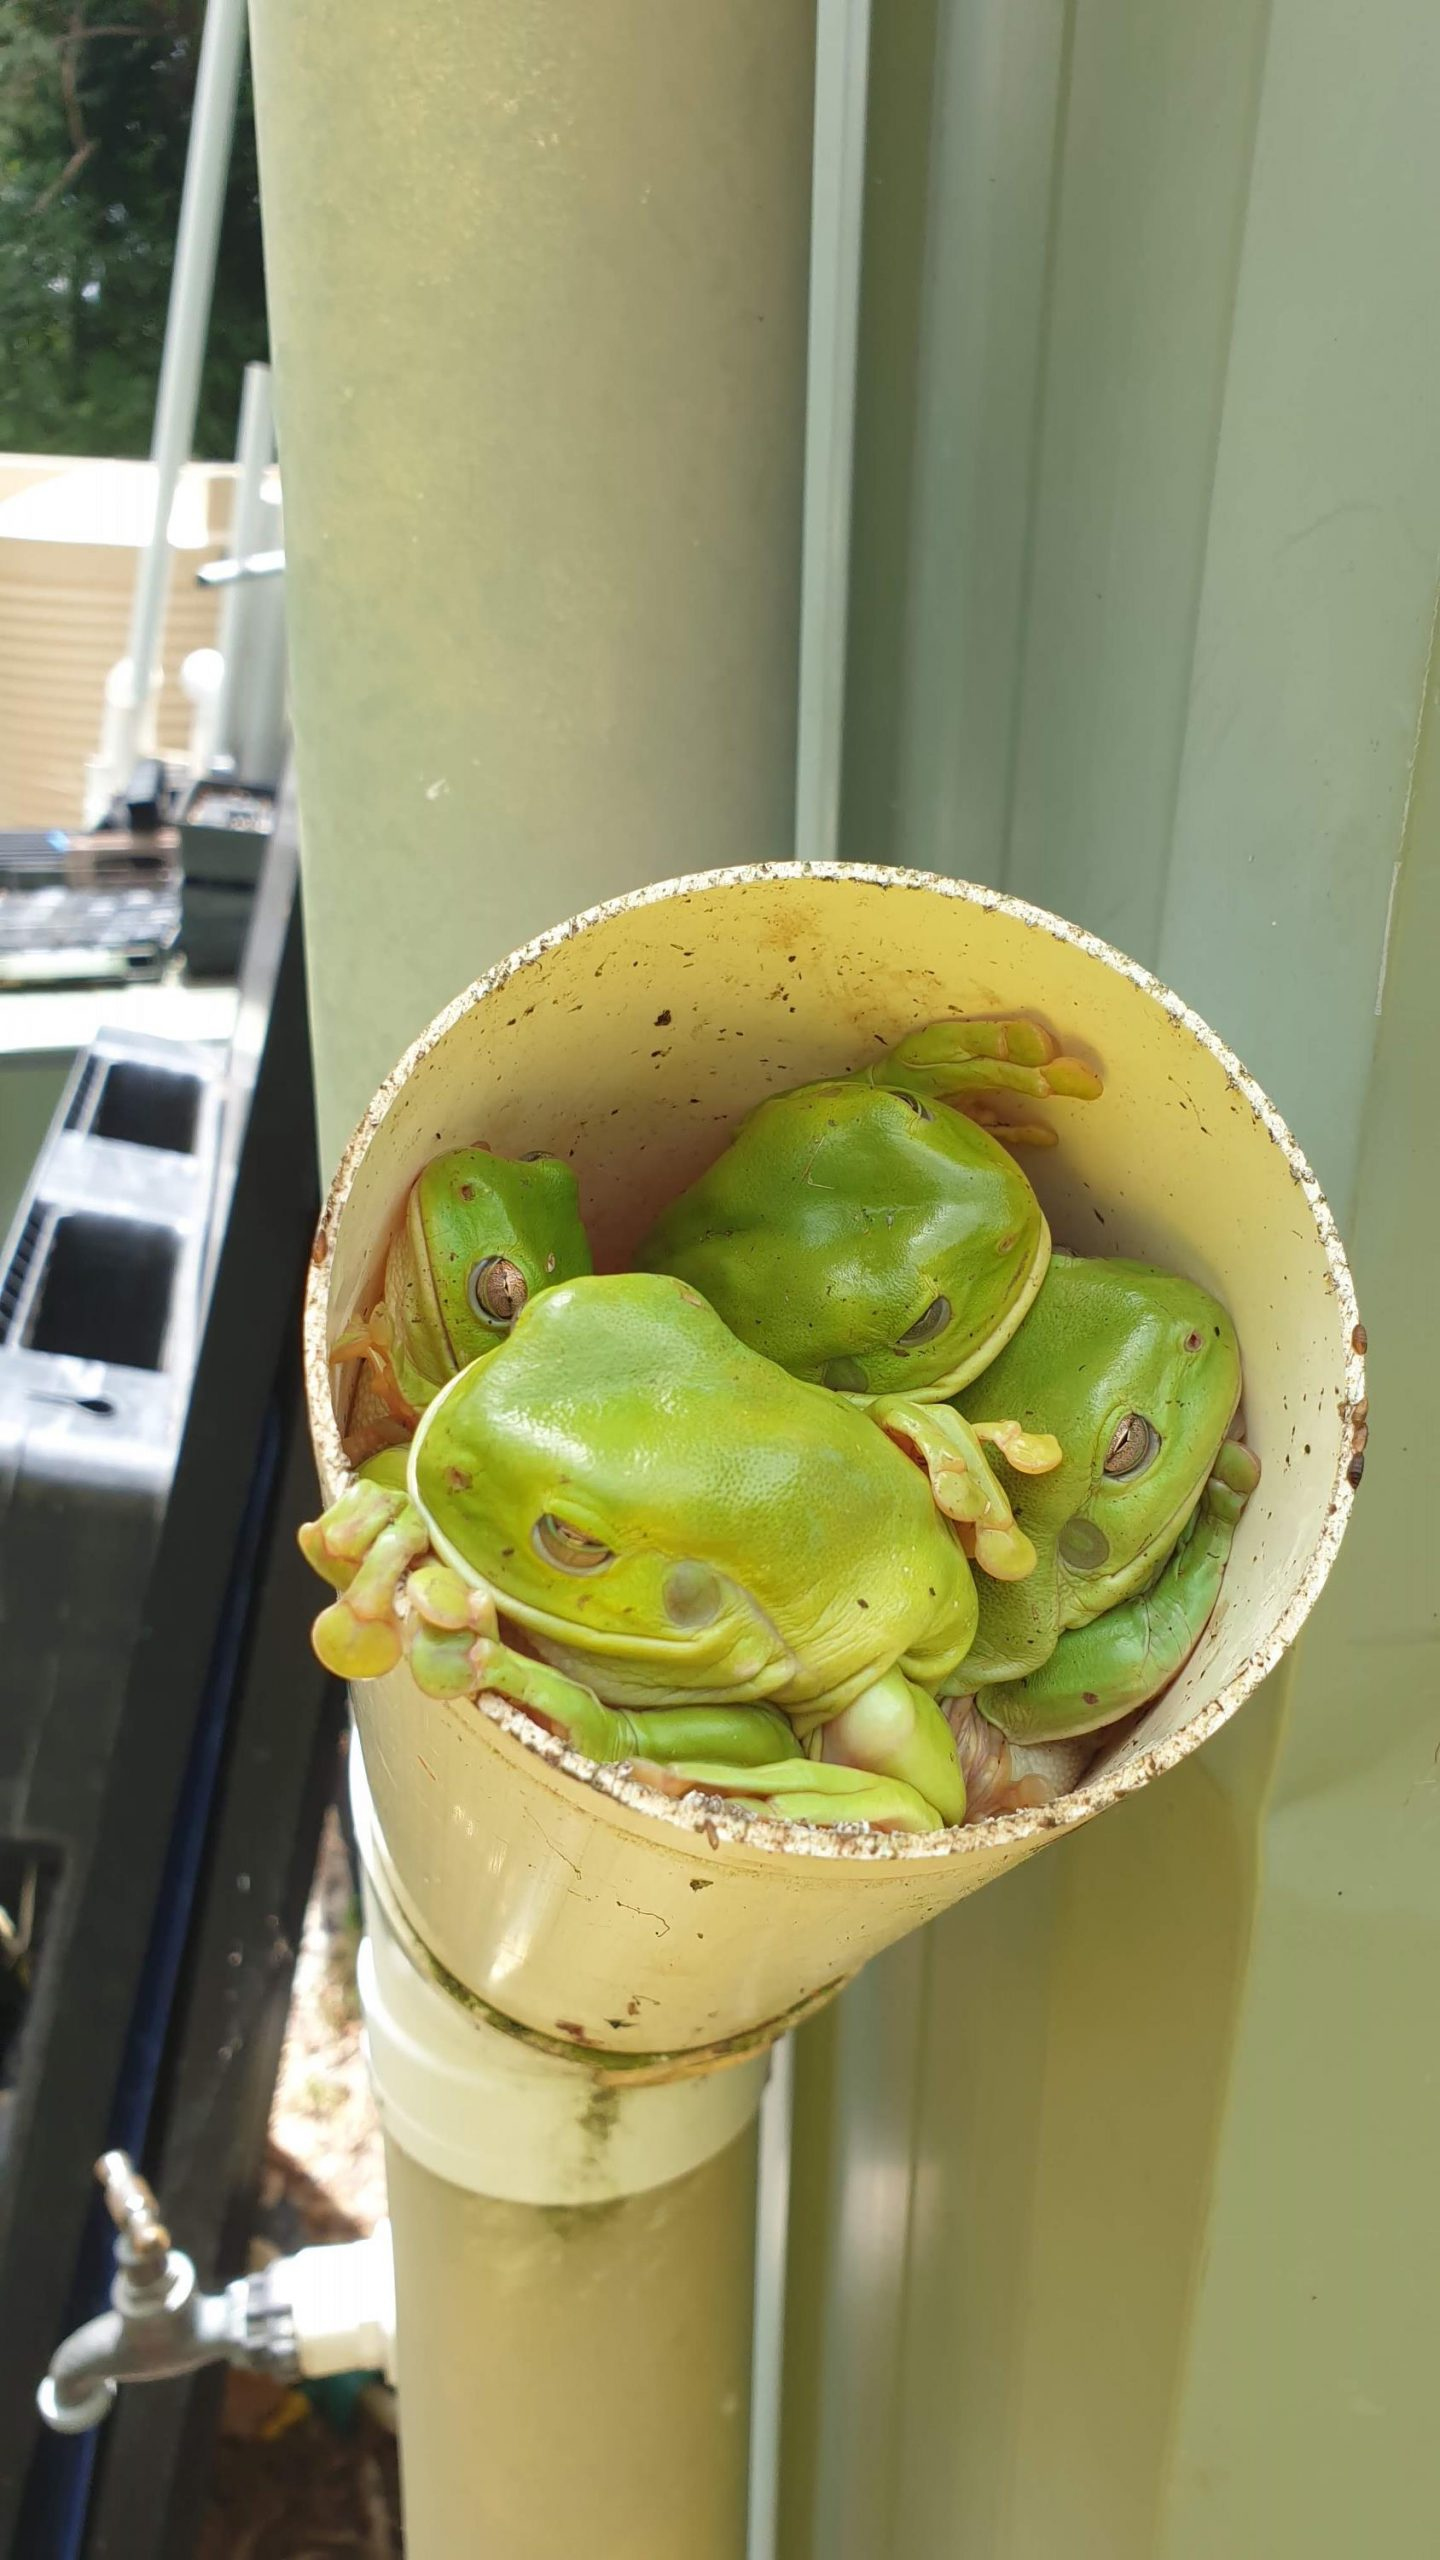 Pipe full of Frogs